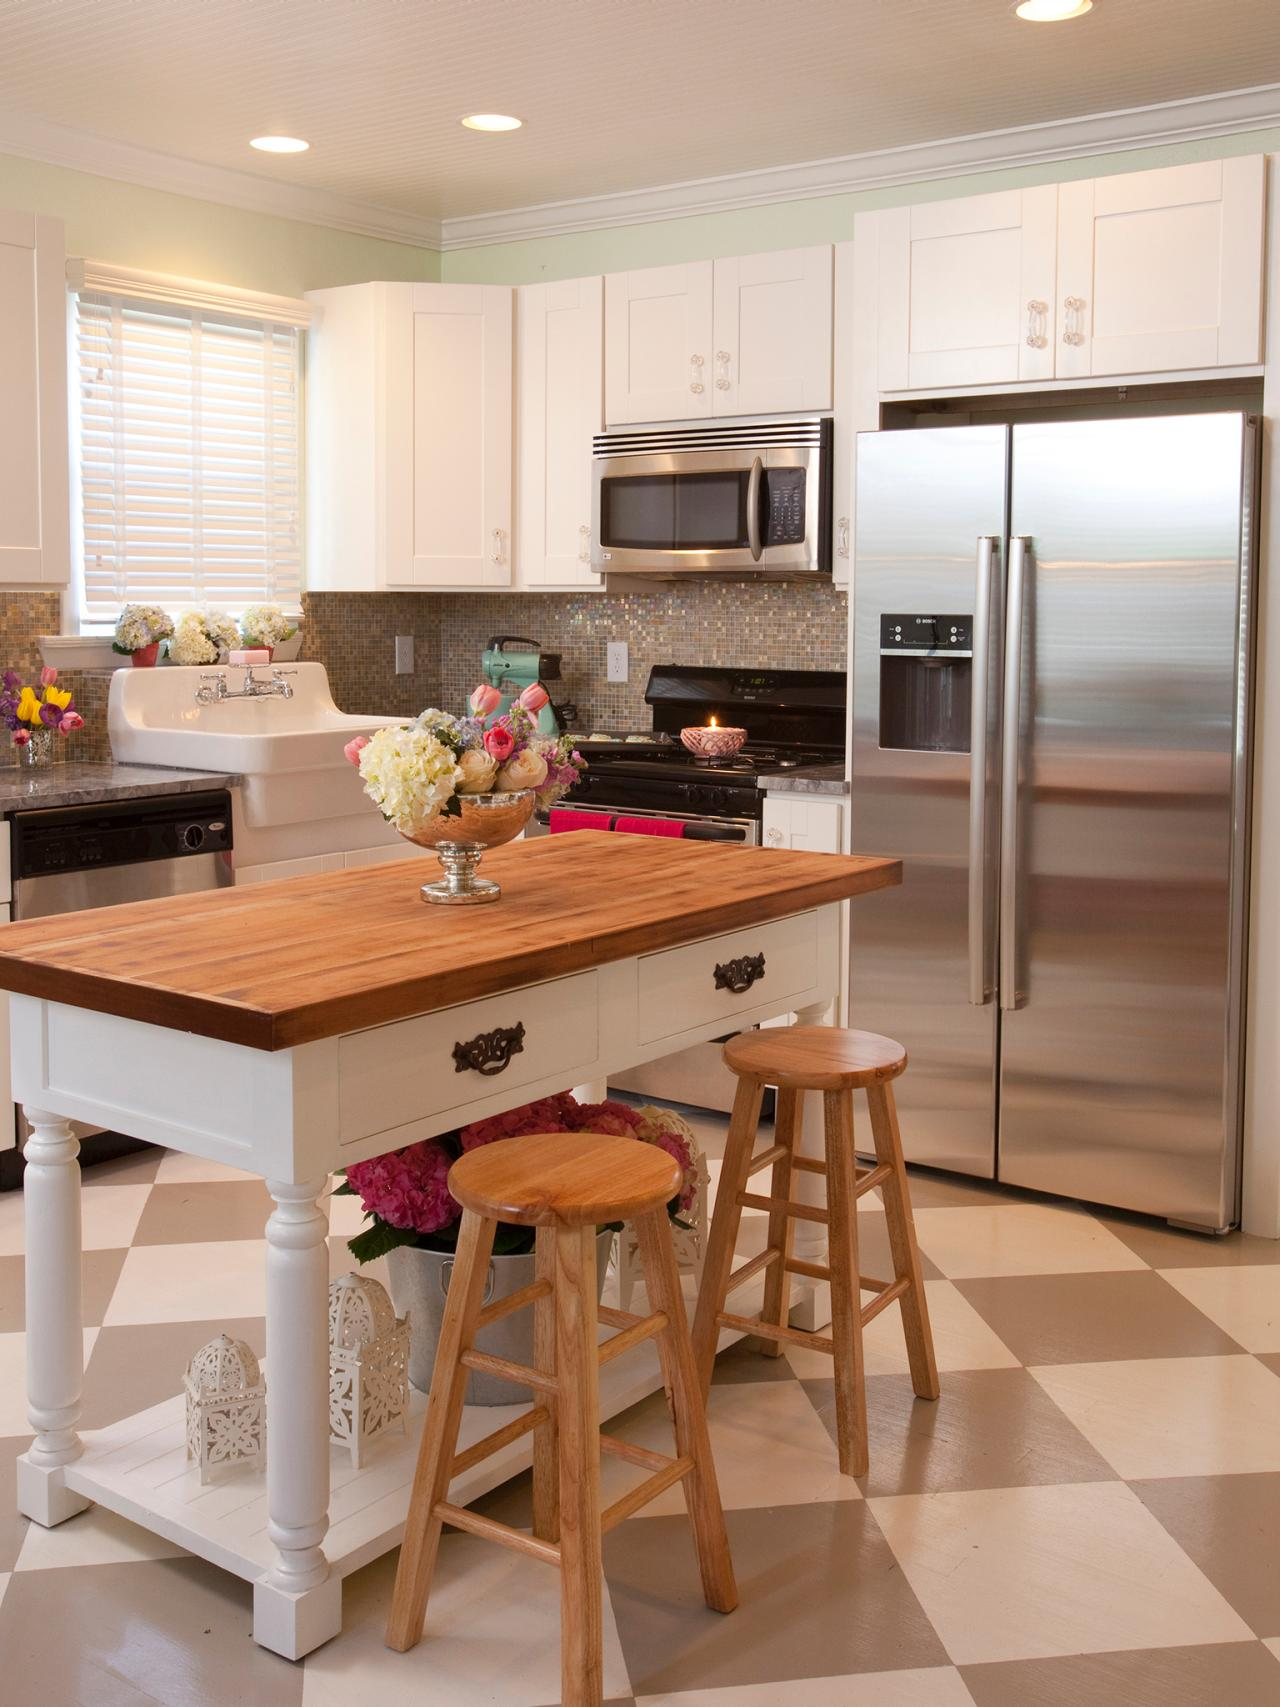 Small Kitchen with Island Design Ideas